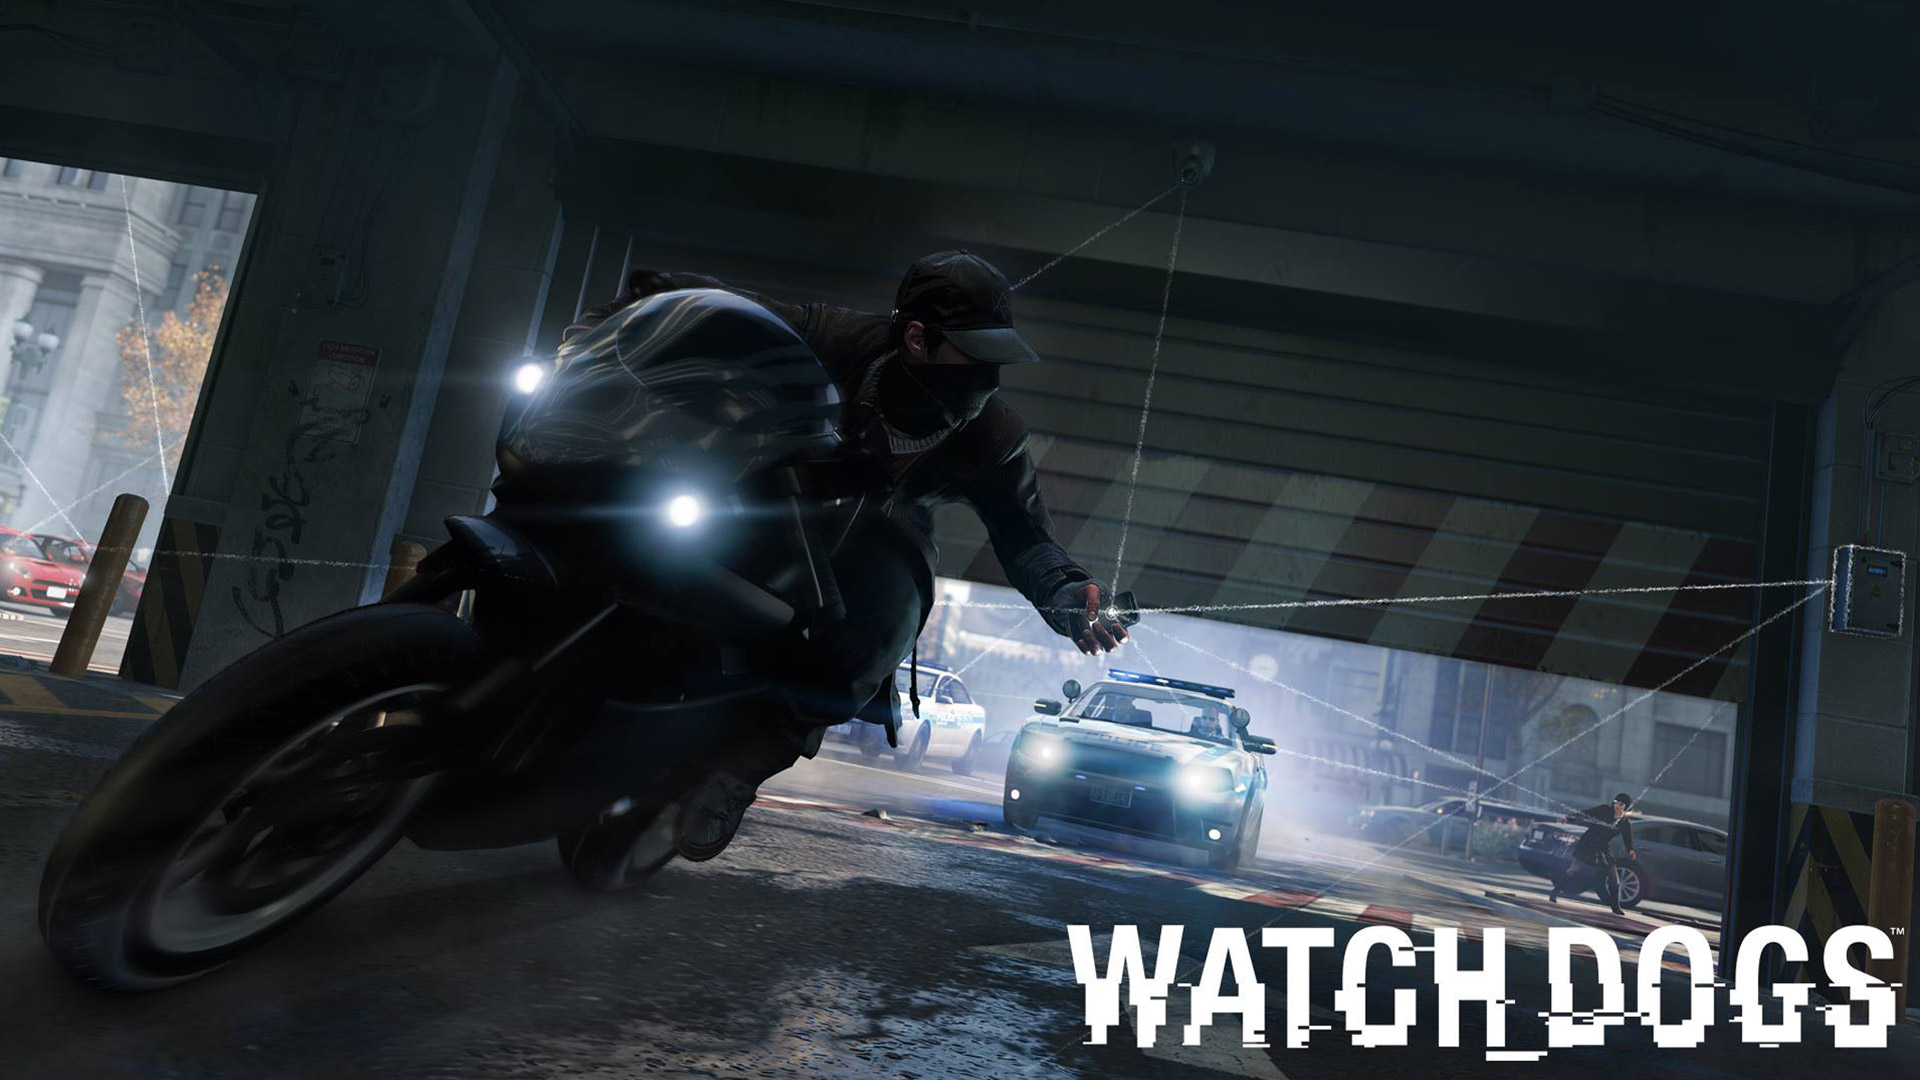 Watch Dogs wallpaper 3